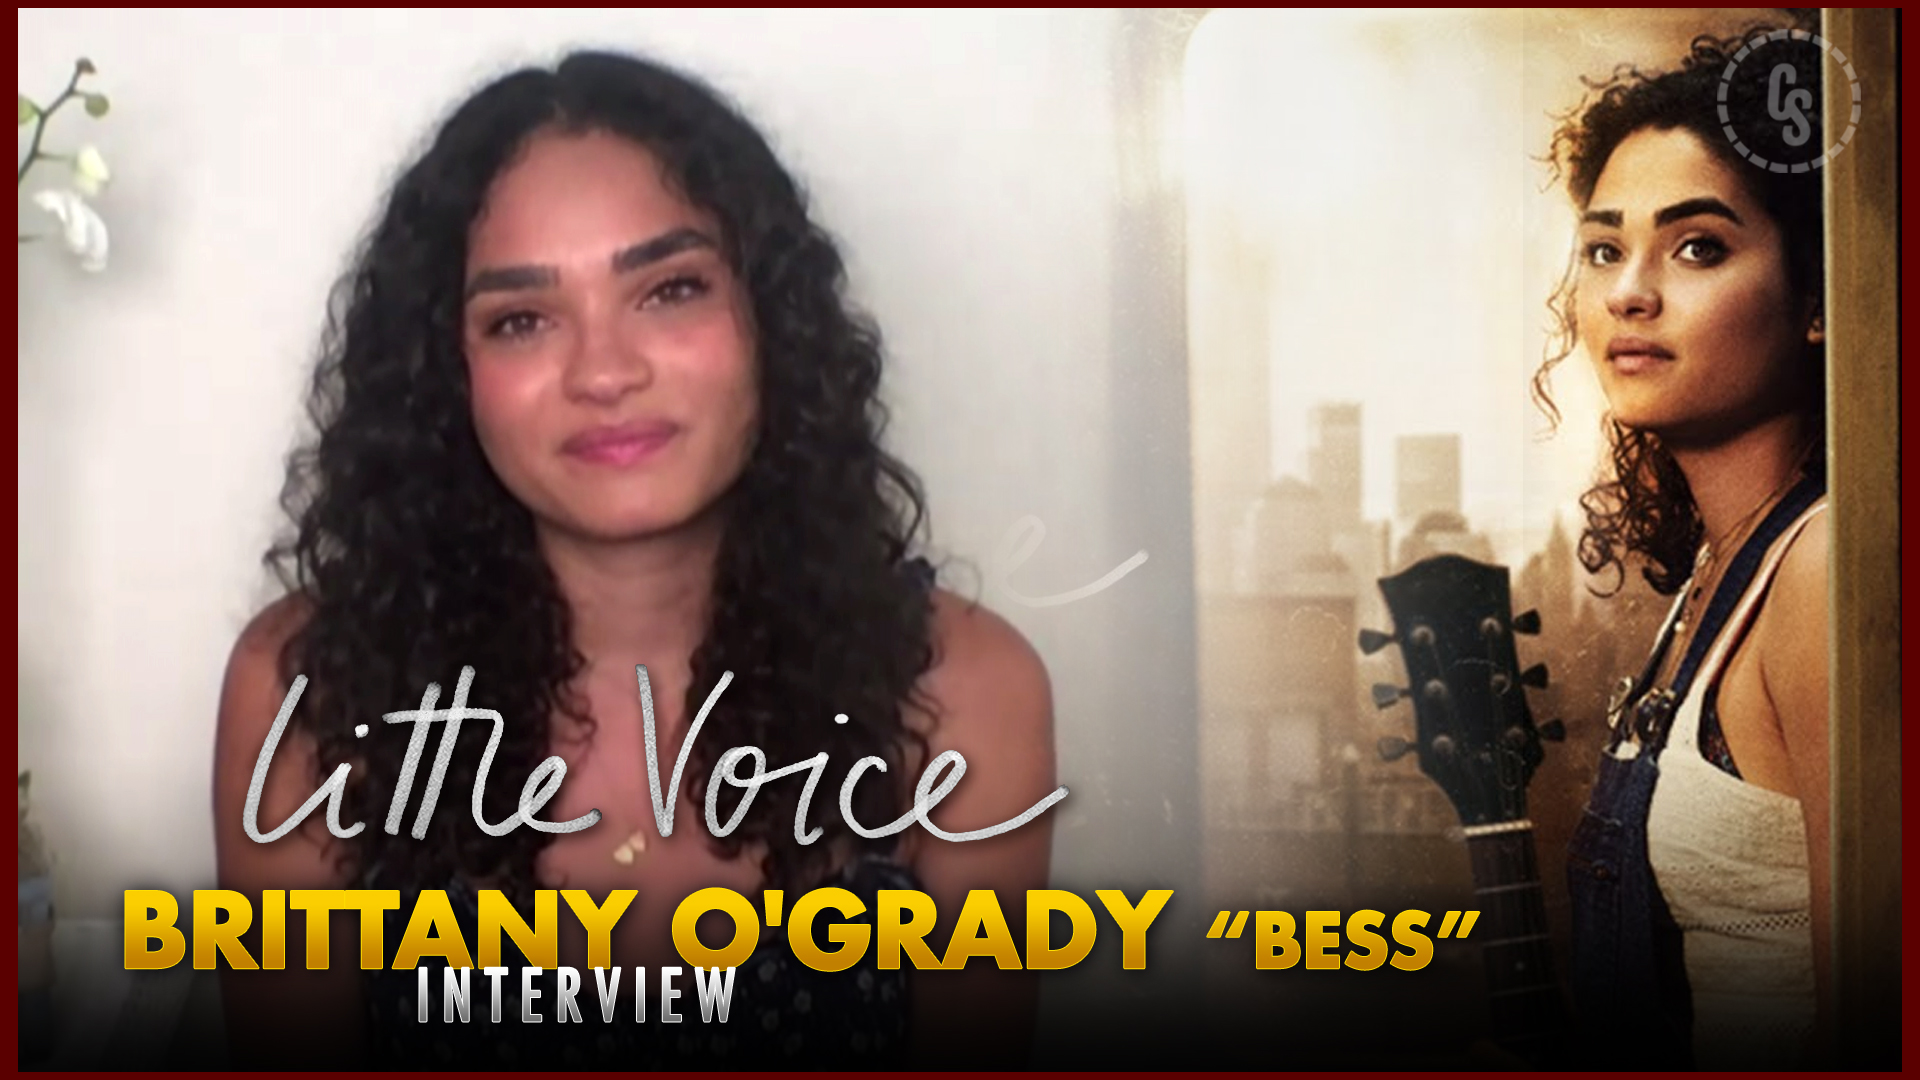 CS Video: Little Voice Interview With Brittany O'Grady